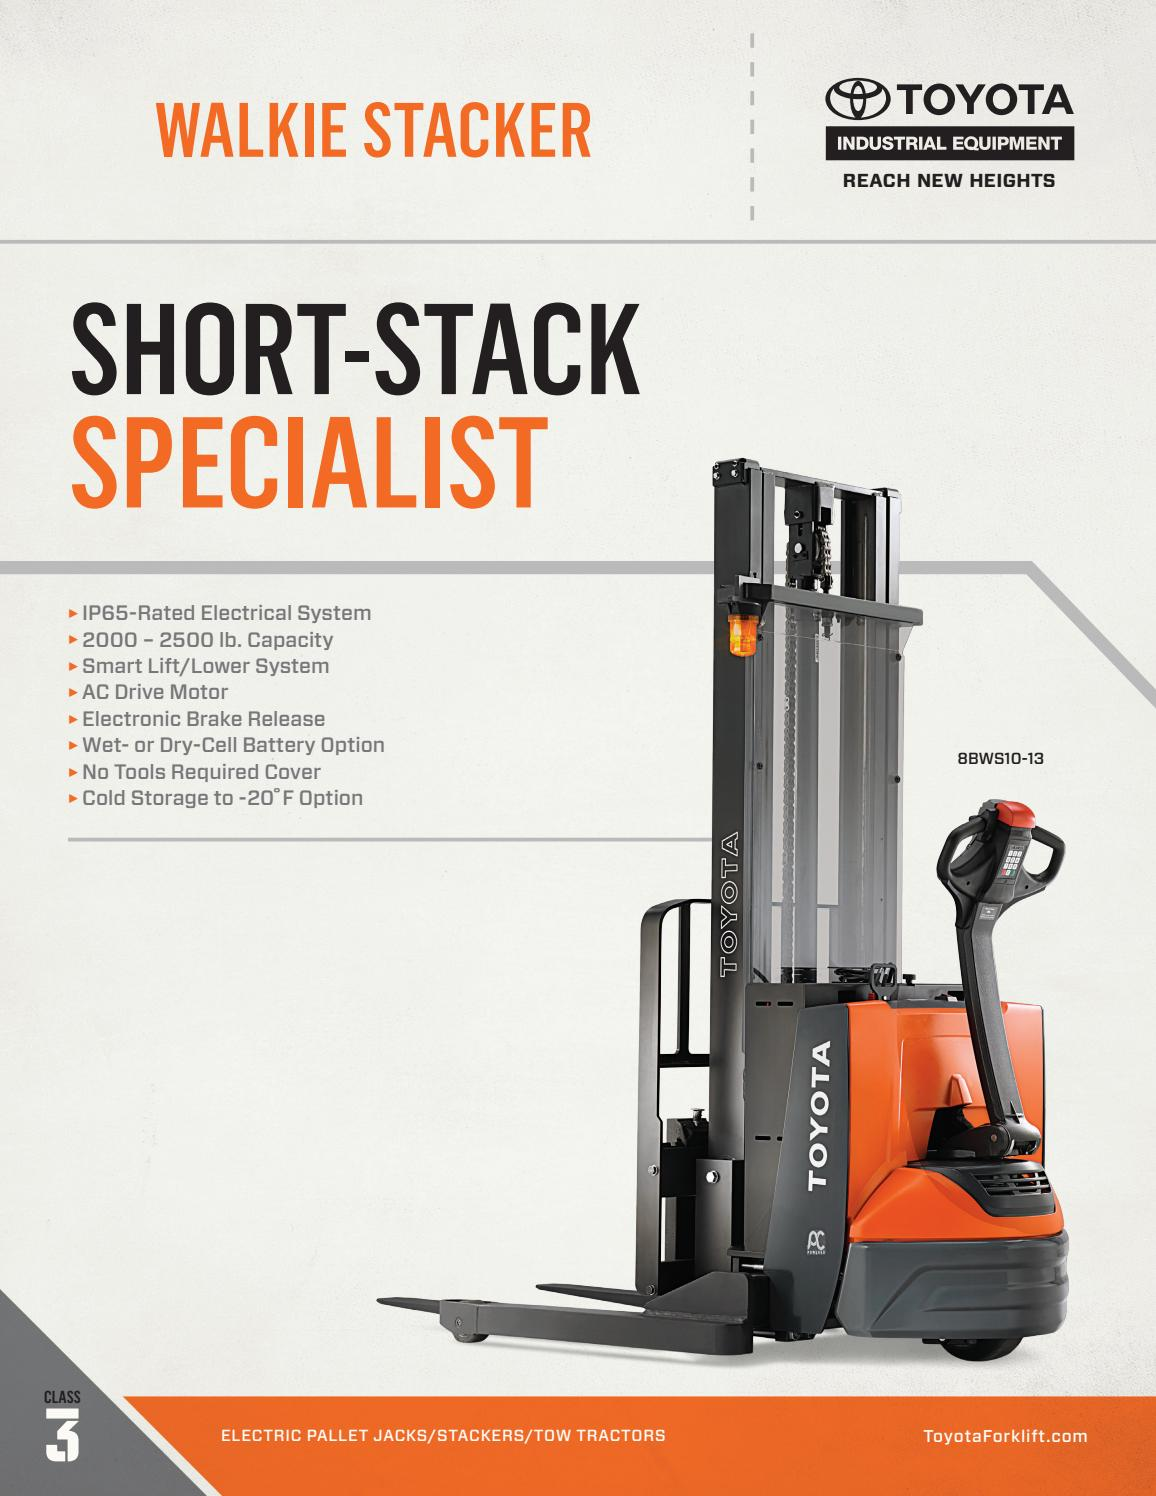 Toyota Forklift Walkie Stacker Product Brochure By Toyota